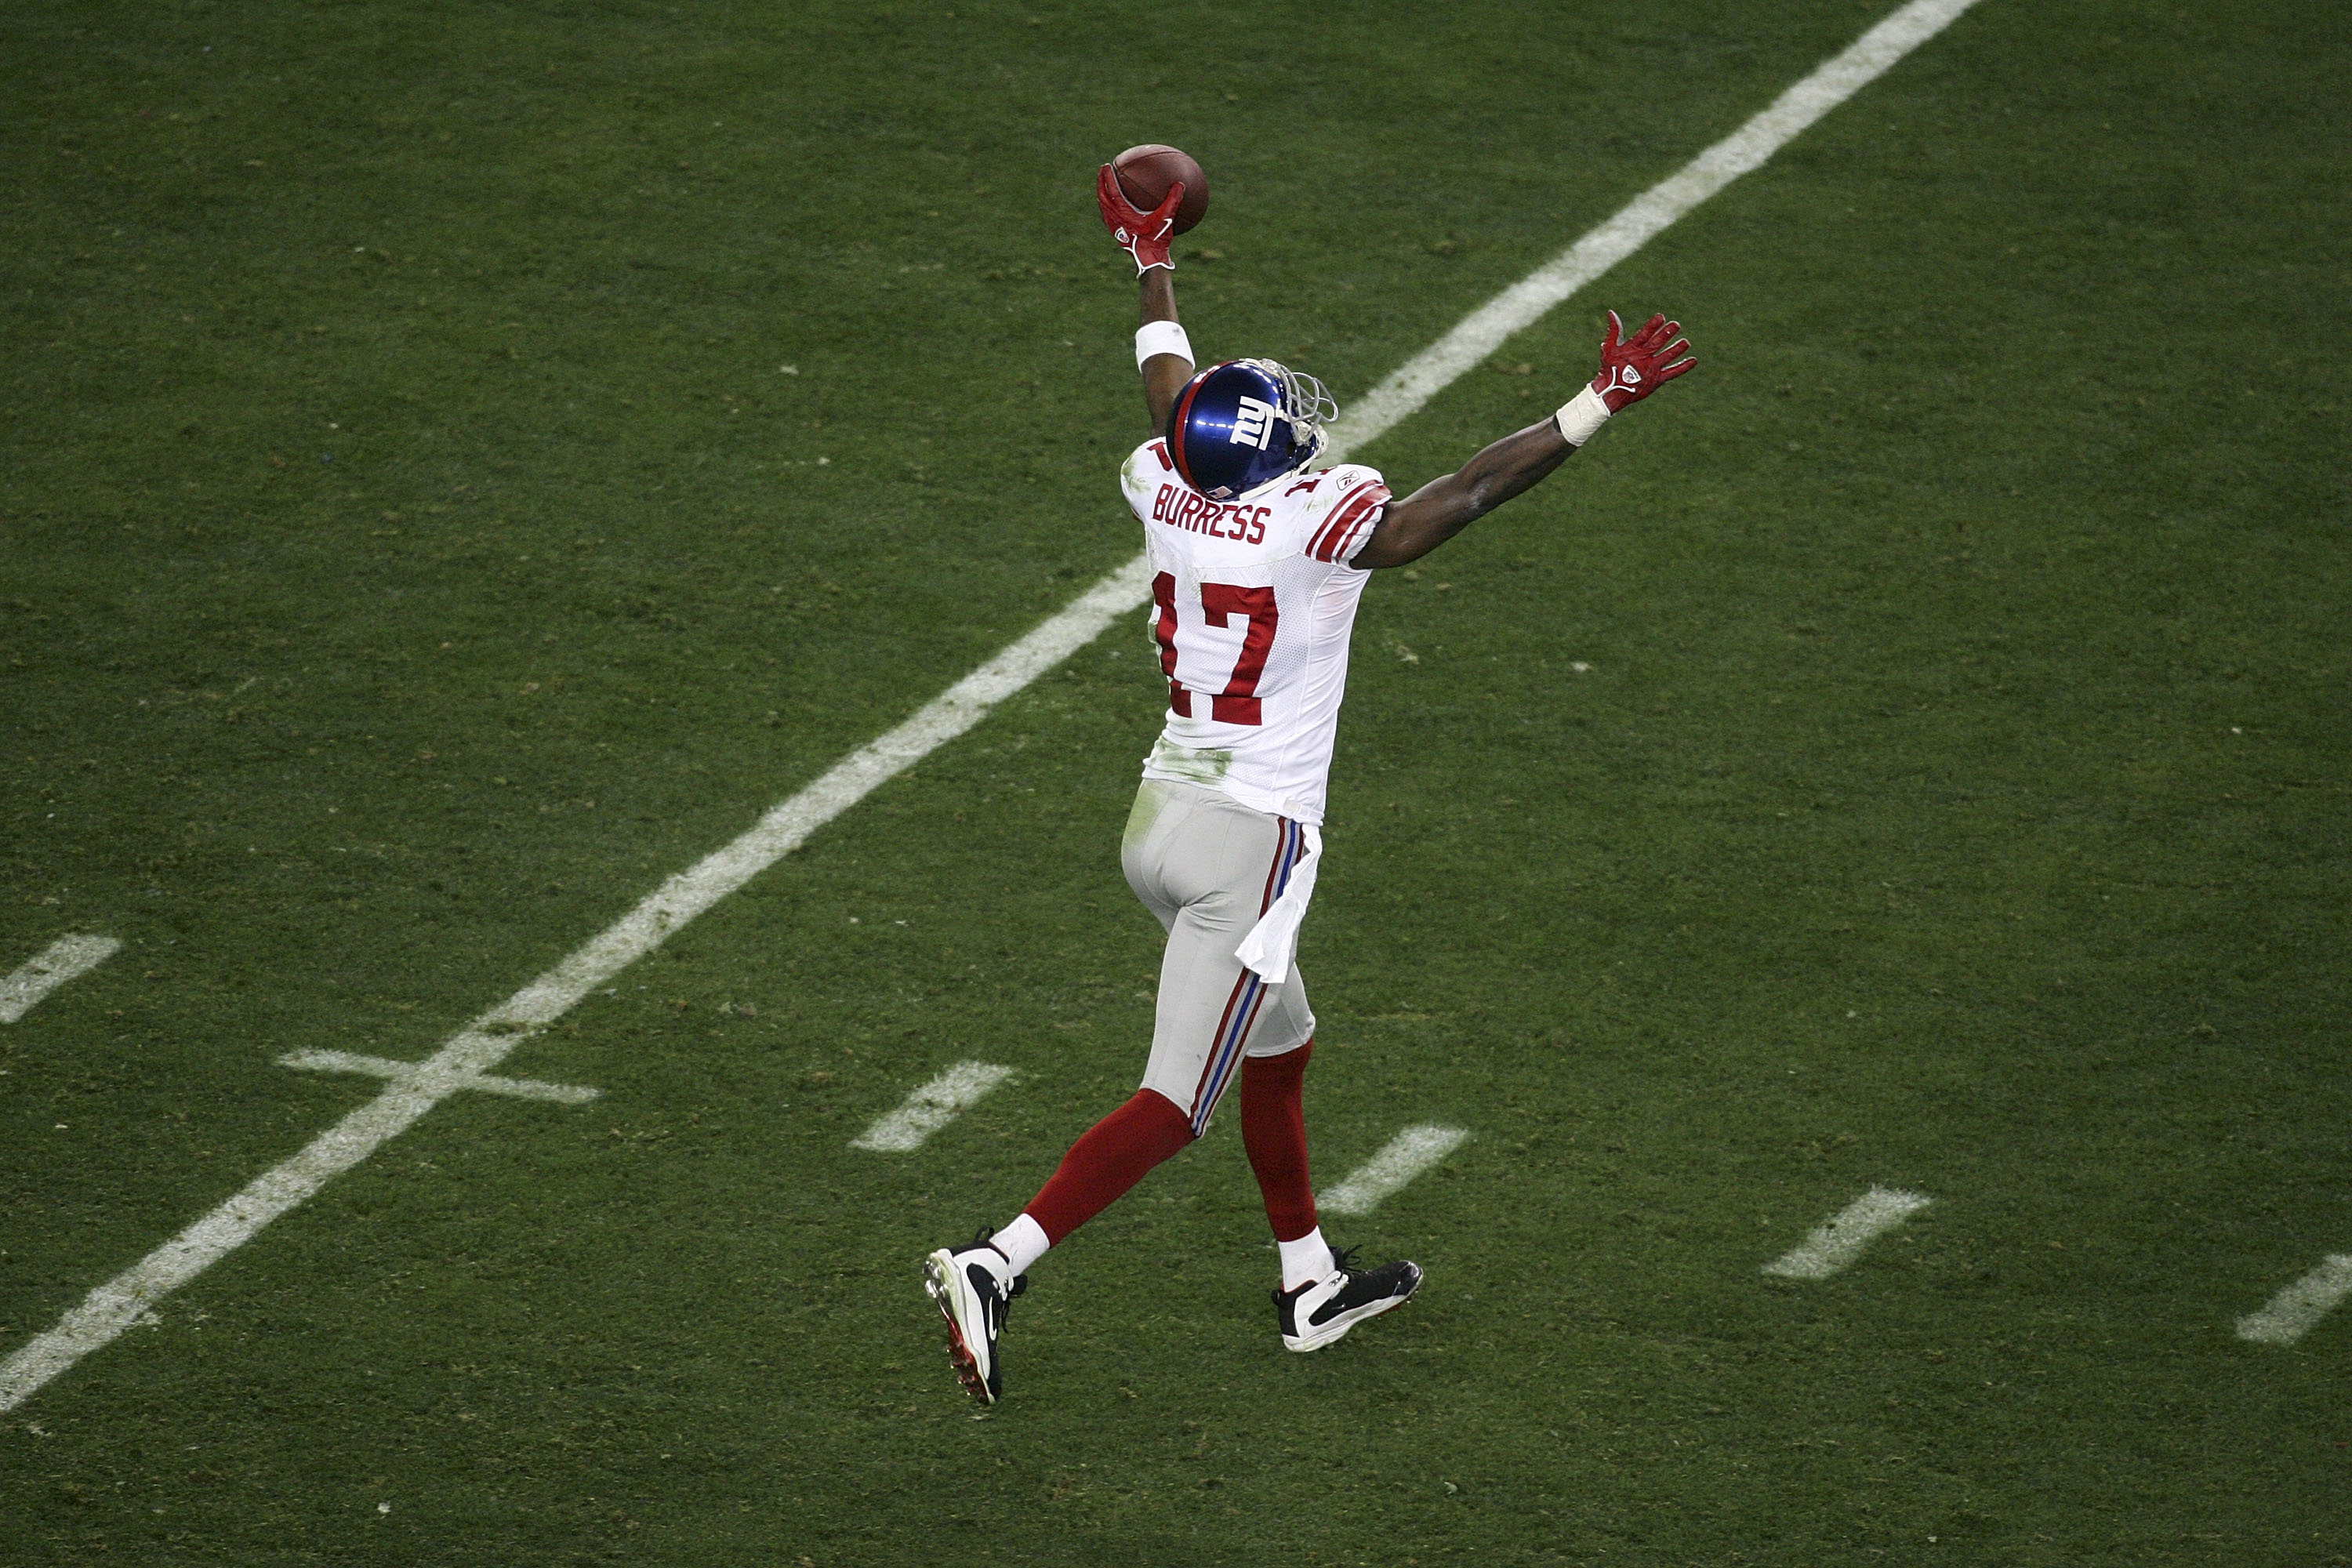 GLENDALE, AZ - FEBRUARY 03:  Wide receiver Plaxico Burress #17 of the New York Giants celebrates after he catches a 13-yard touchdown pass in the fourth quarter over Ellis Hobbs #27 of the New England Patriots during Super Bowl XLII on February 3, 2008 at